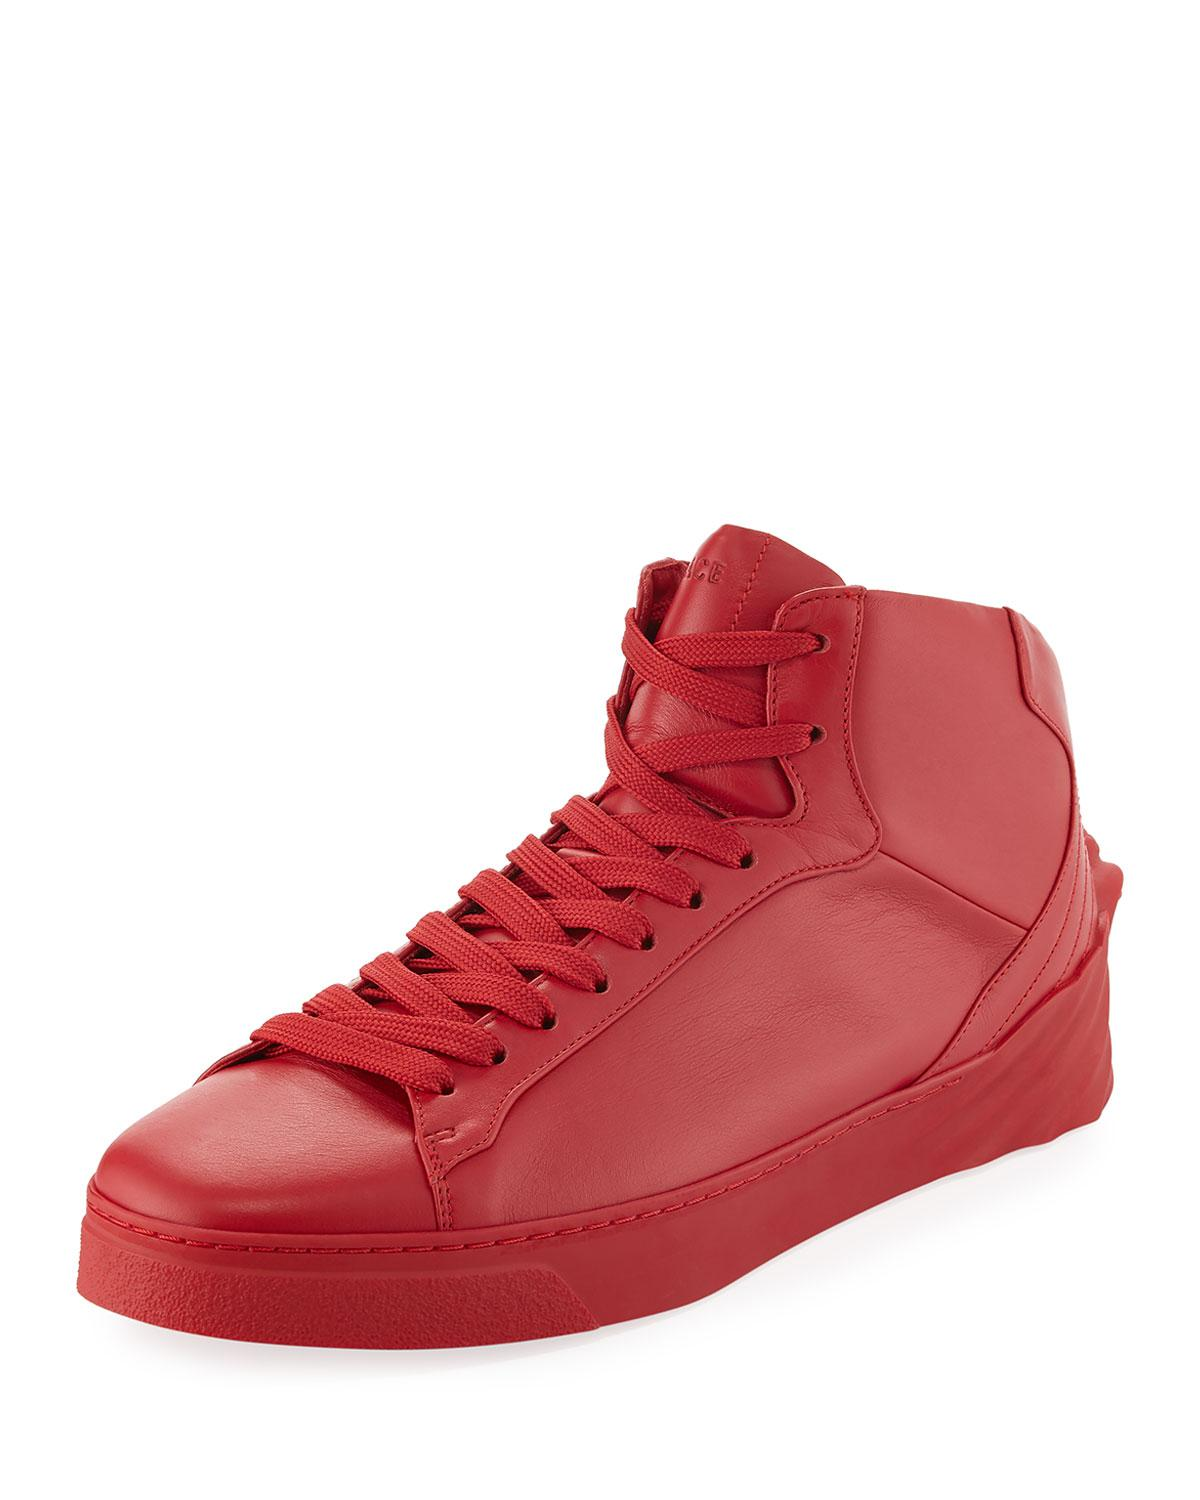 Versace Men's 3d Medusa Mid-top Leather Sneaker in Red for ...